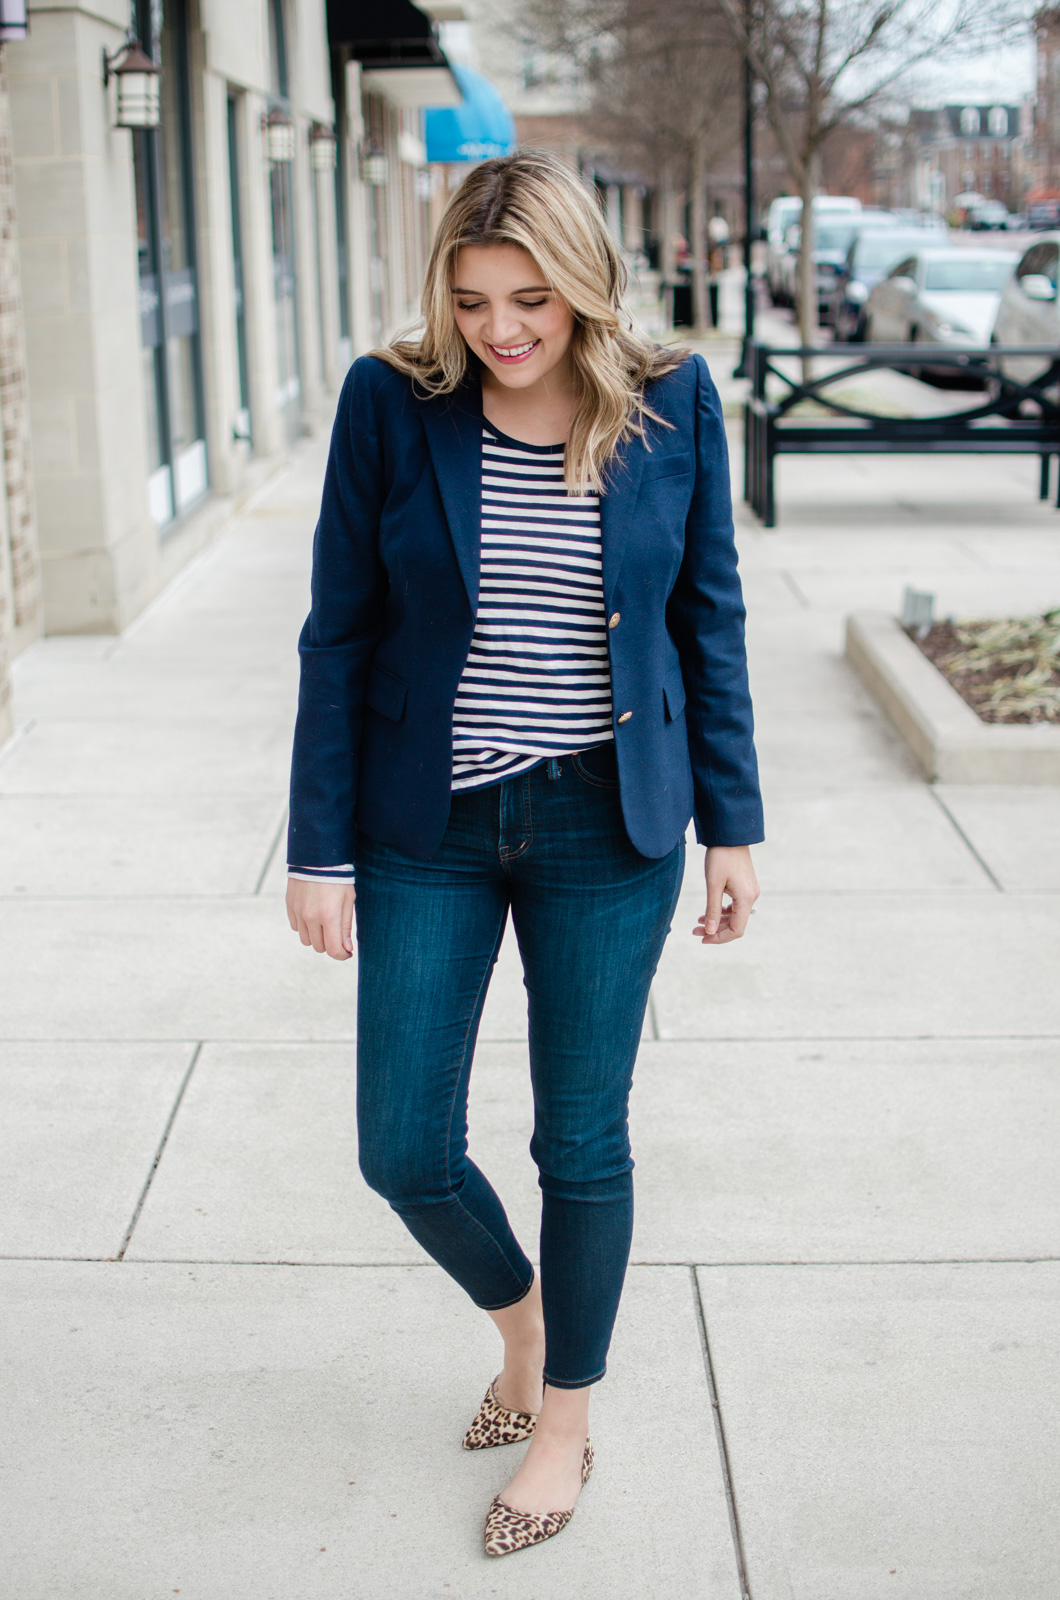 Outfit Business Casual Striped Top Outfit Business Casual By Lauren M